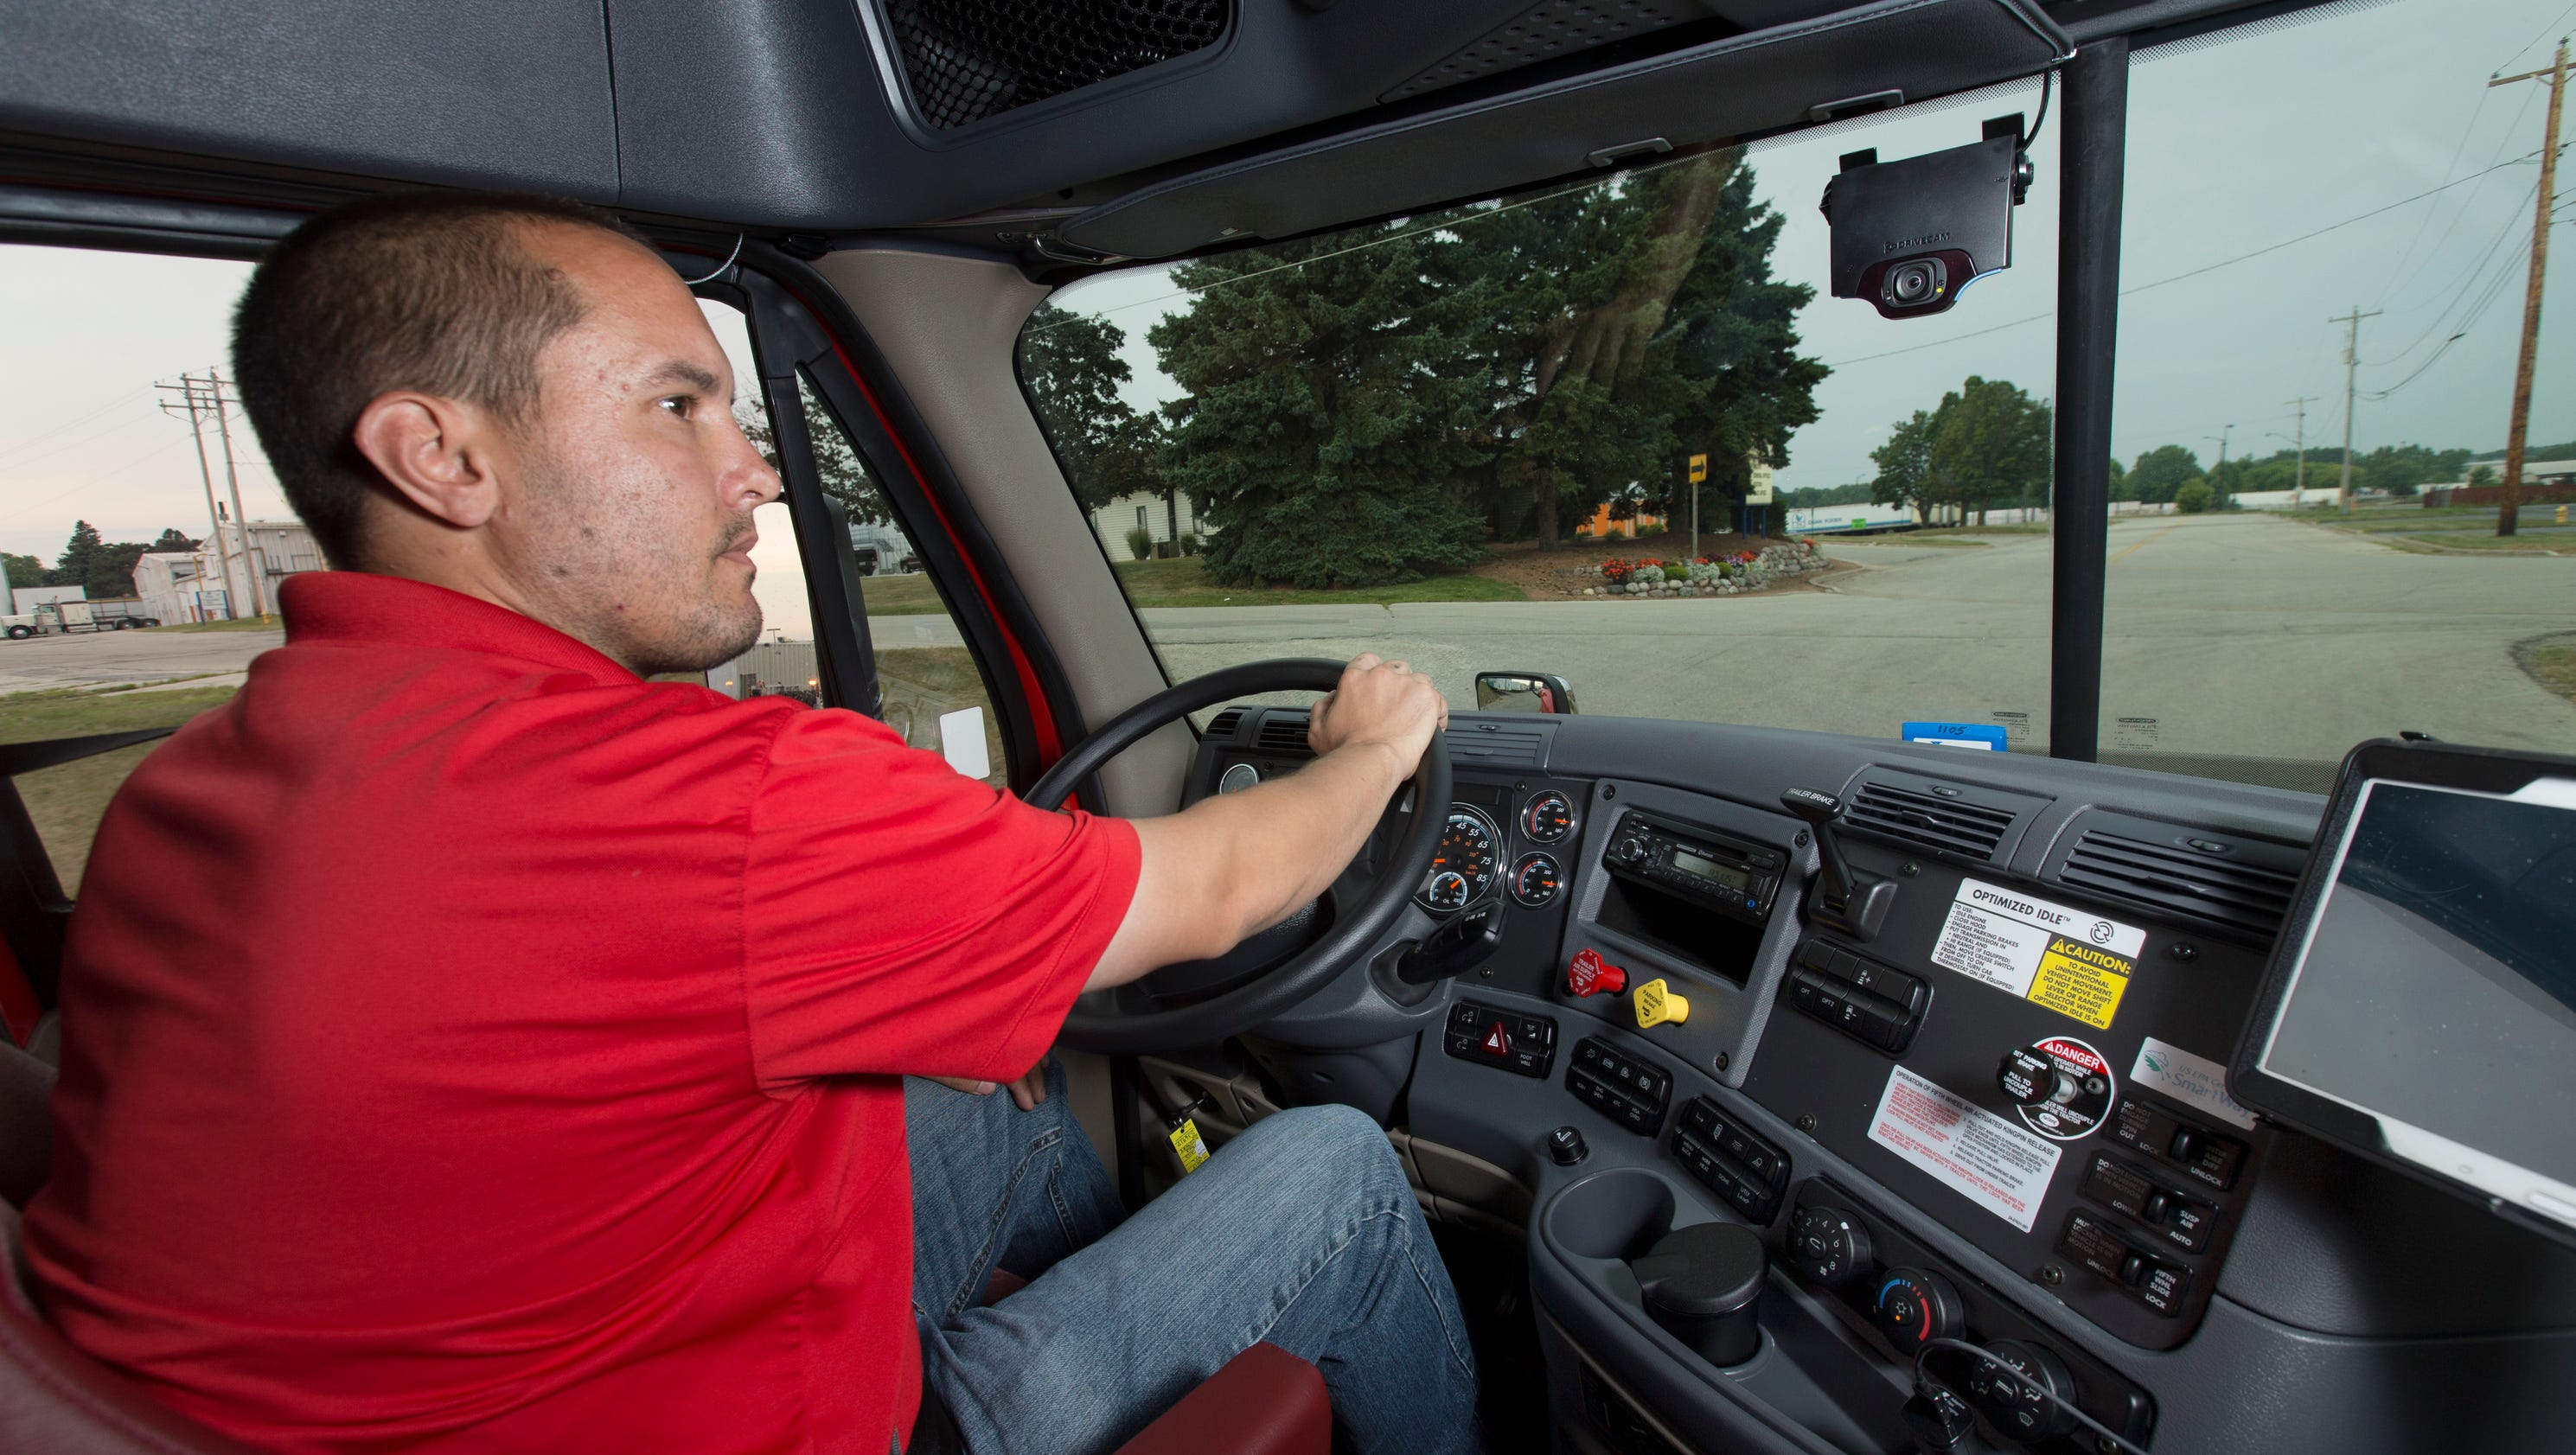 truck cameras watch road  drivers too